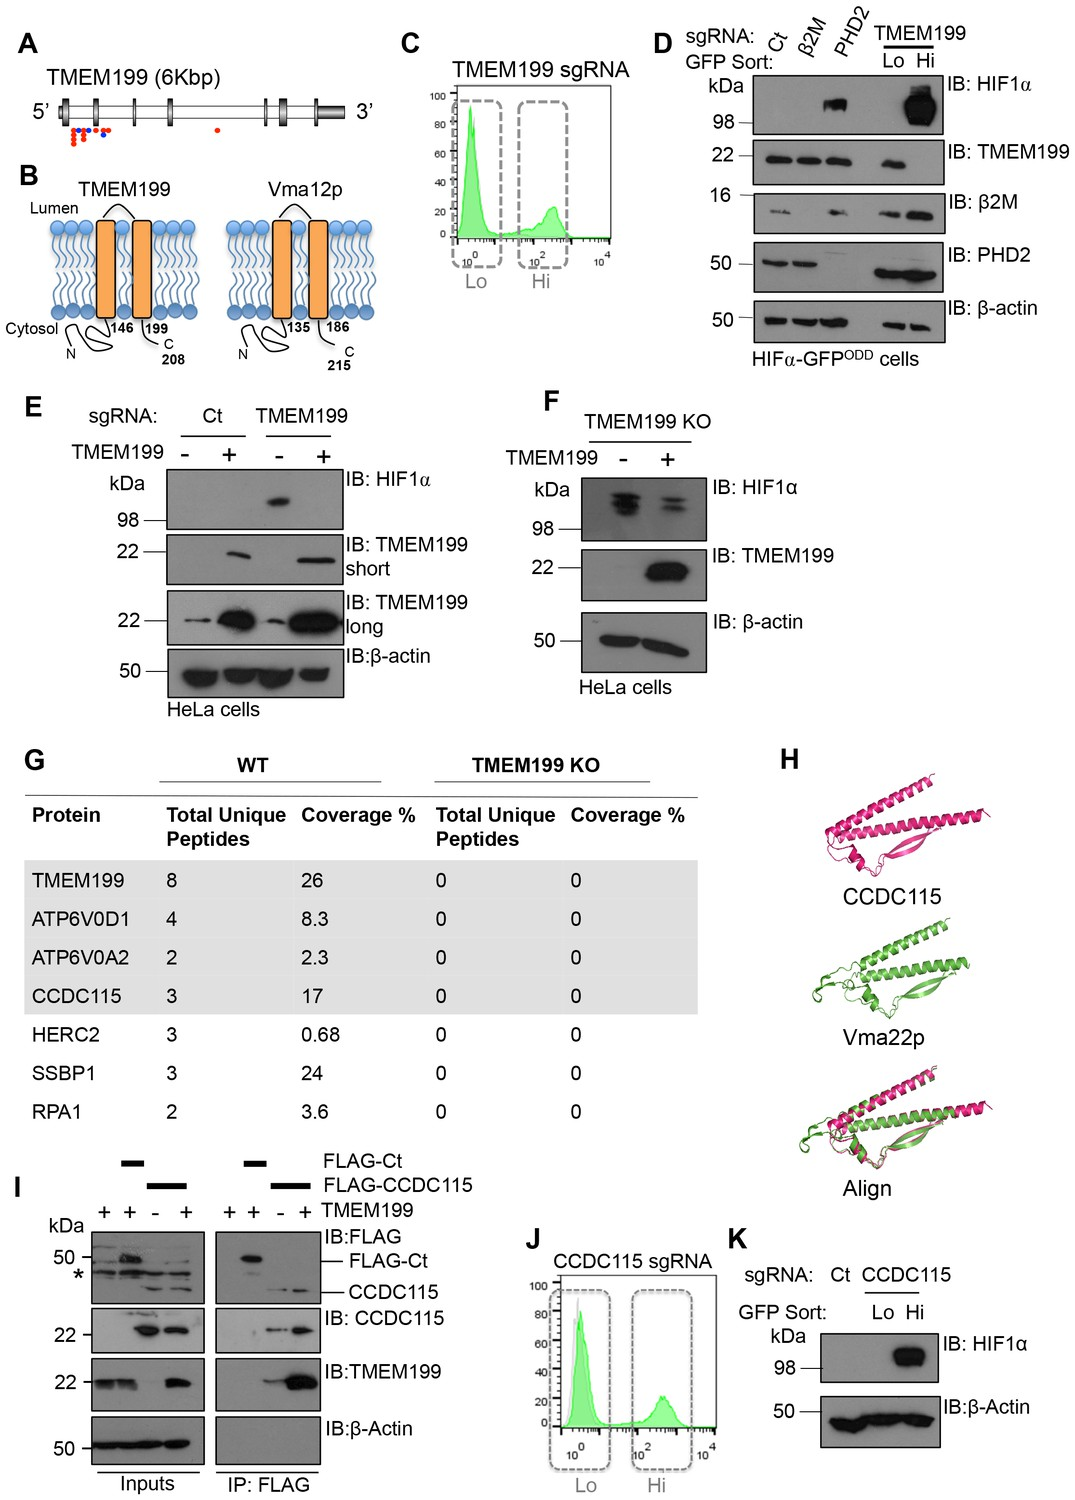 The vacuolar-ATPase complex and assembly factors, TMEM199